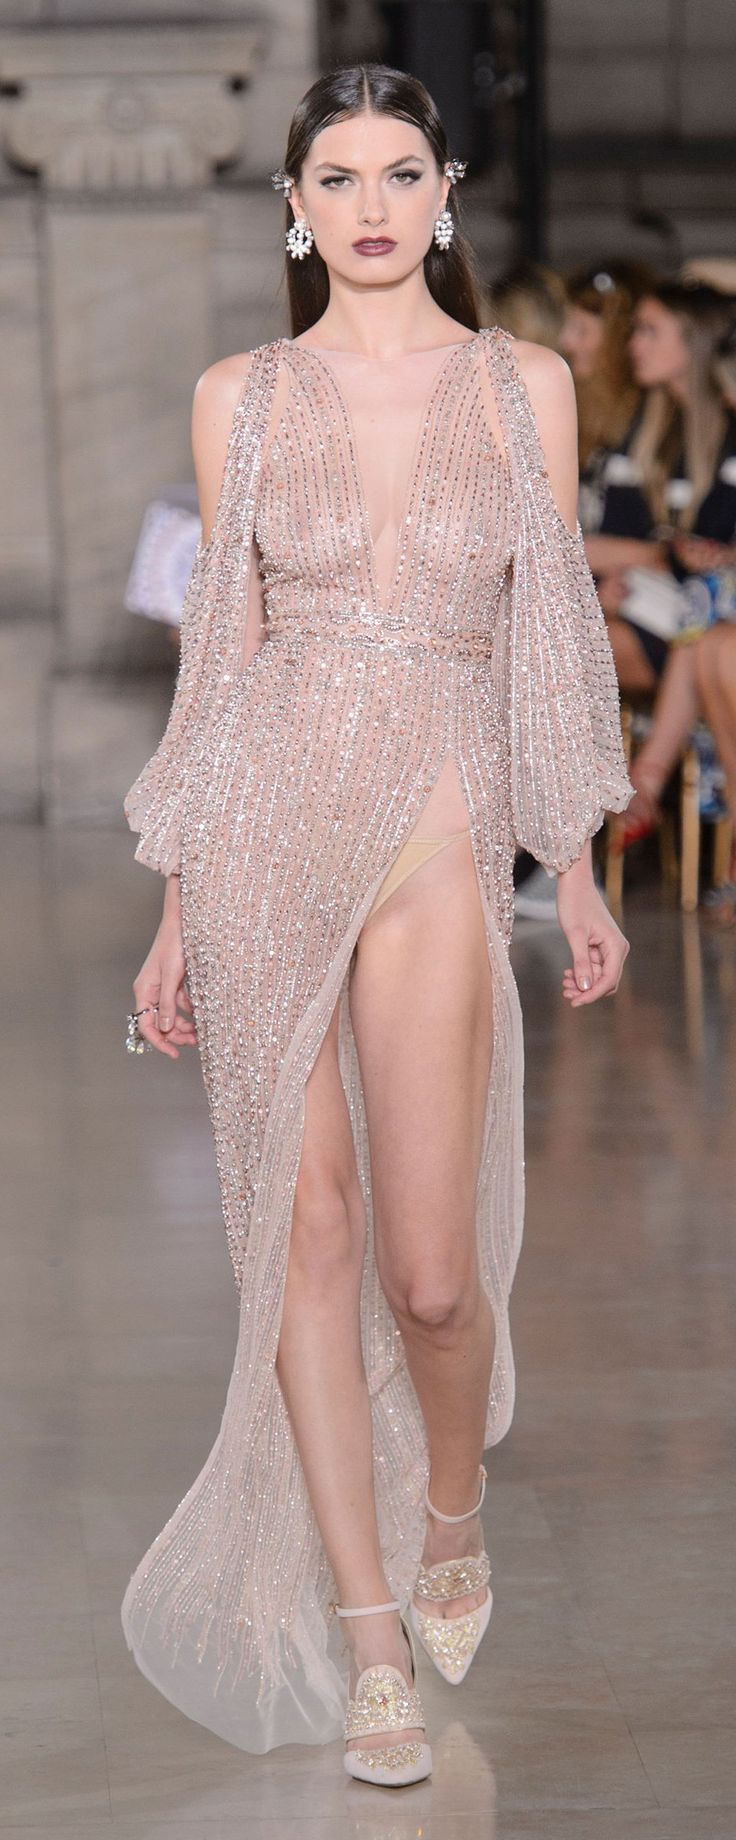 95 best cool look images on Pinterest | Evening gowns, High fashion ...